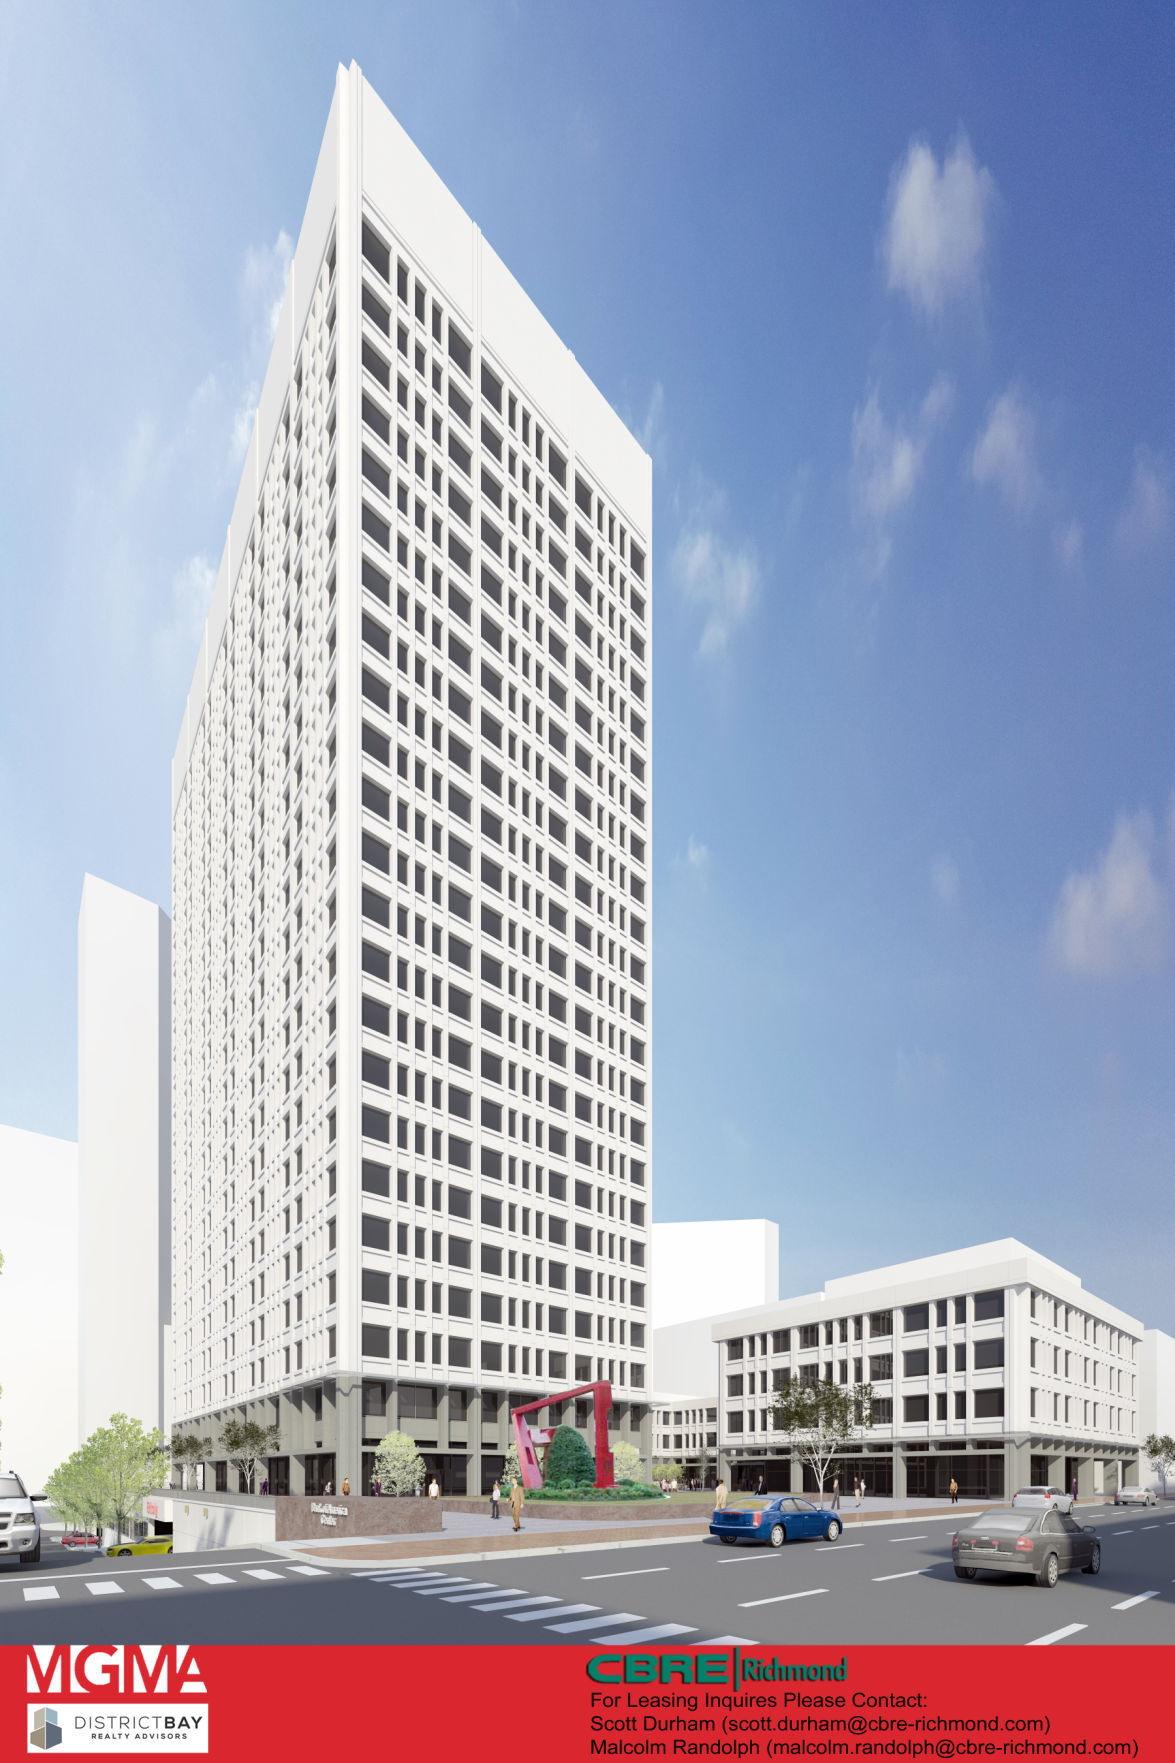 Bank of america building downtown to get major facelift local richmond com